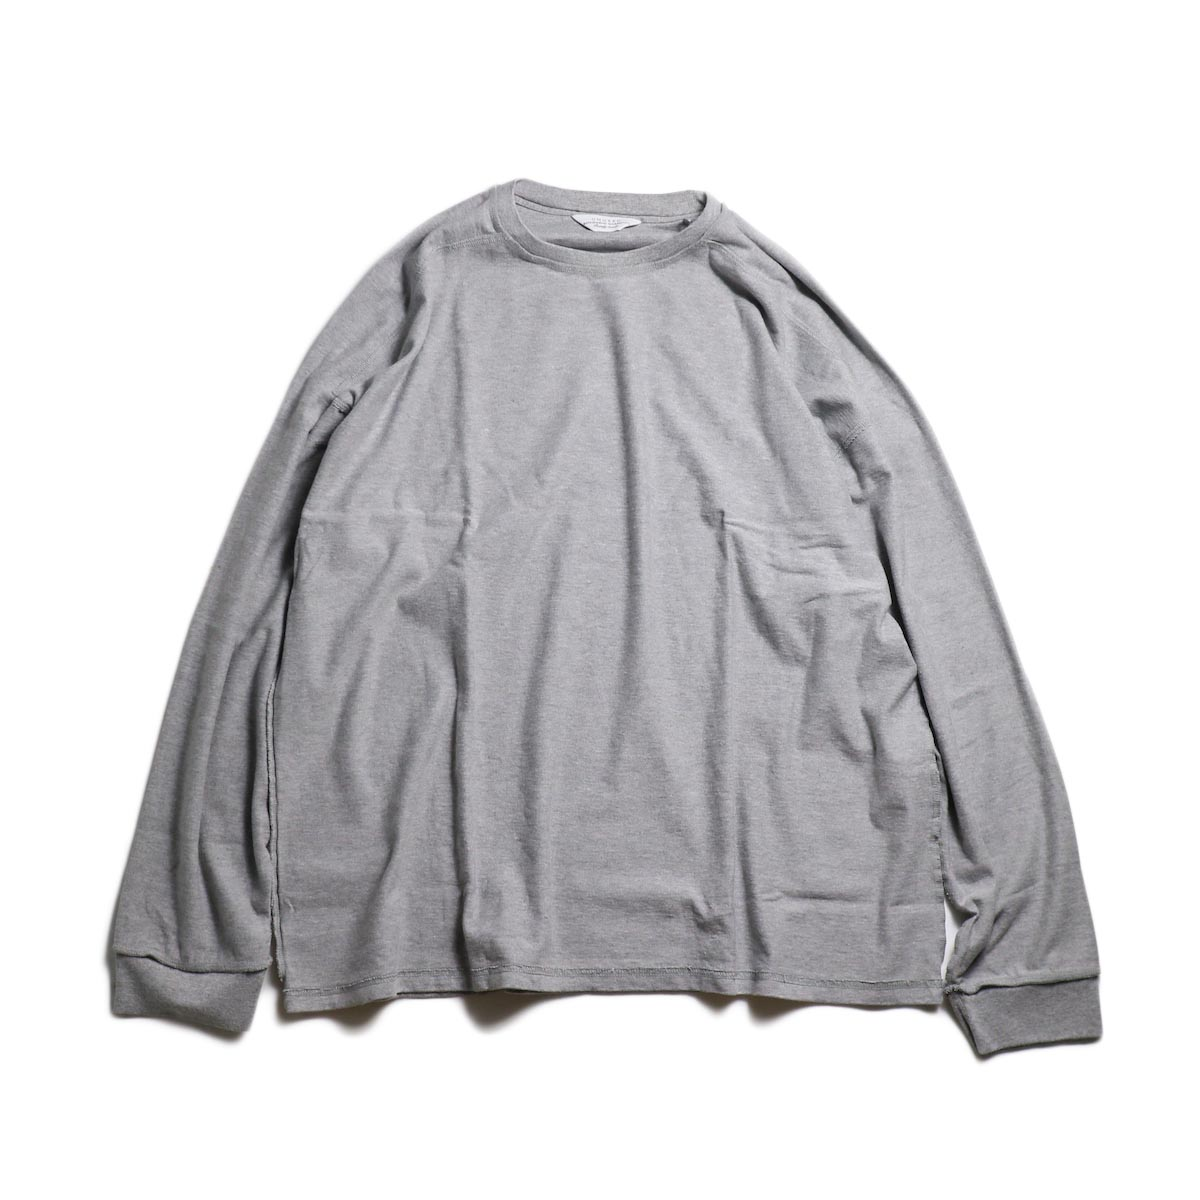 UNUSED / US1686 Long Sleeve T-Shirt -Heather Gray